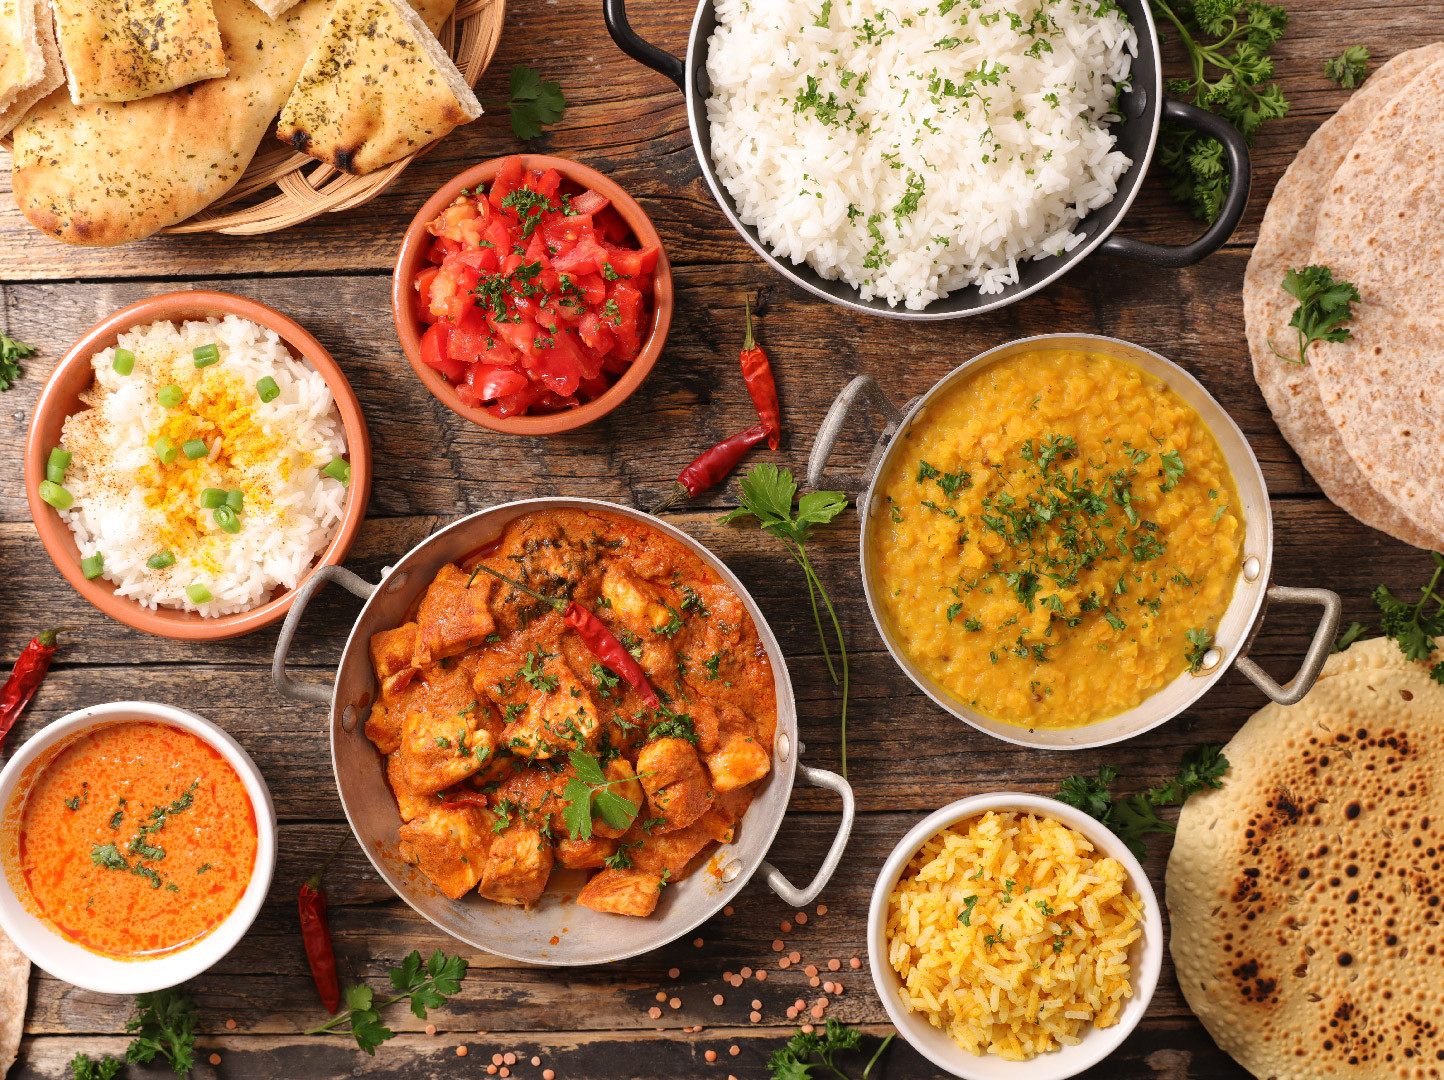 Indian Main Dishes  Top 10 Indian Dishes And Recipes The Most Popular